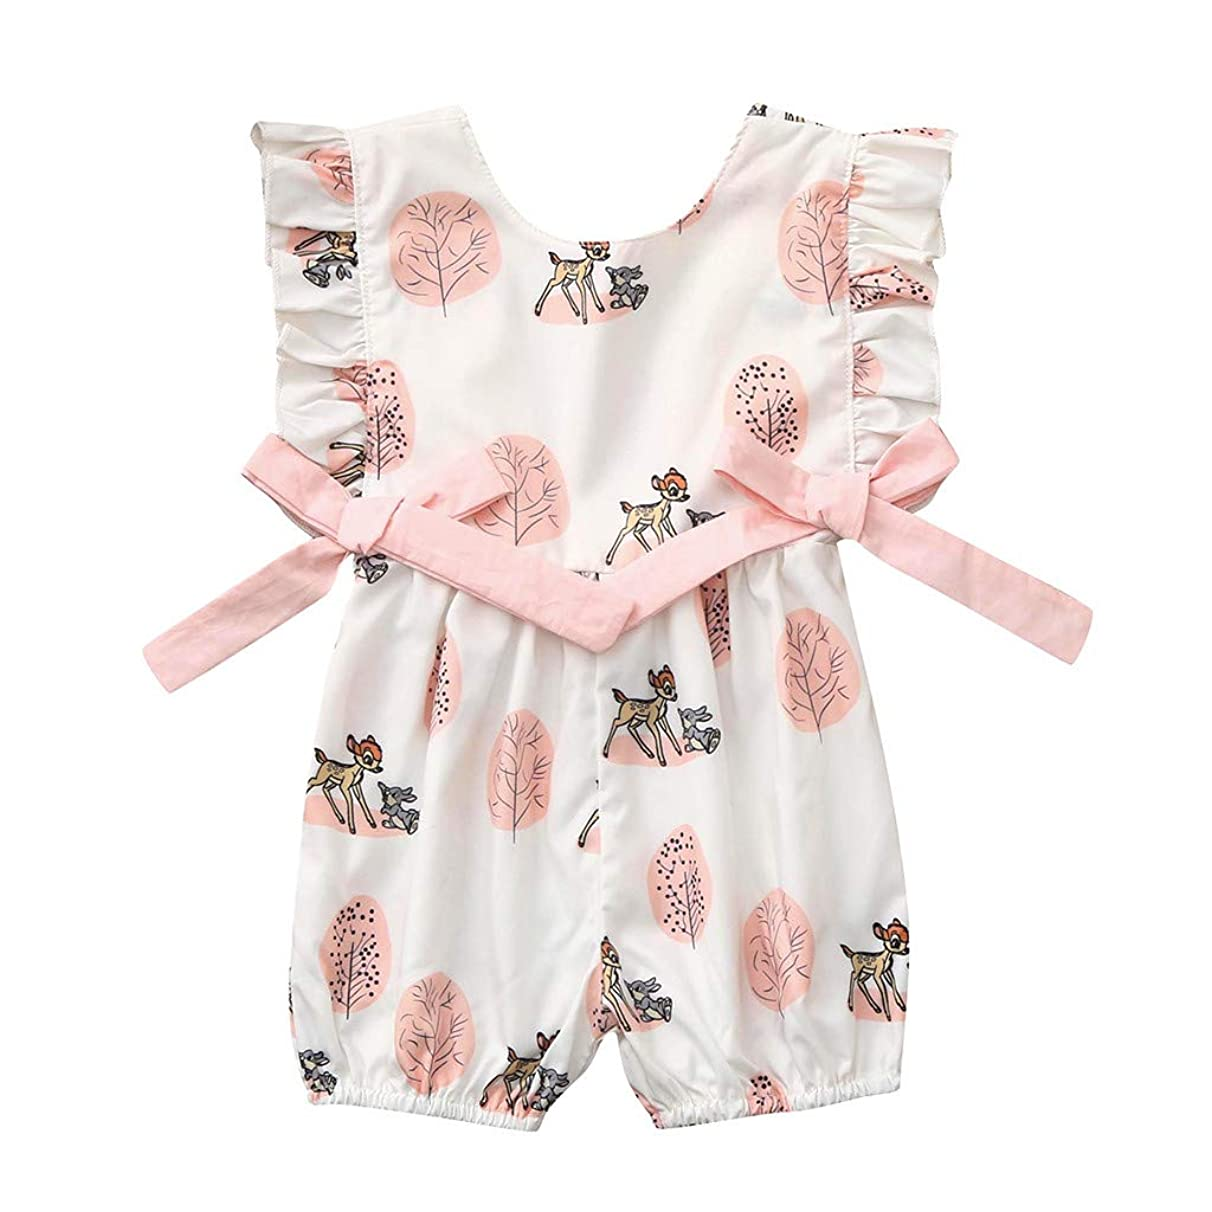 Tomppy Newborn Infant Baby Boy Girl Romper Bow Cartoon Deer Bodysuits Onesies Summer Sleeveless Jumpsuit Clothes Outfits